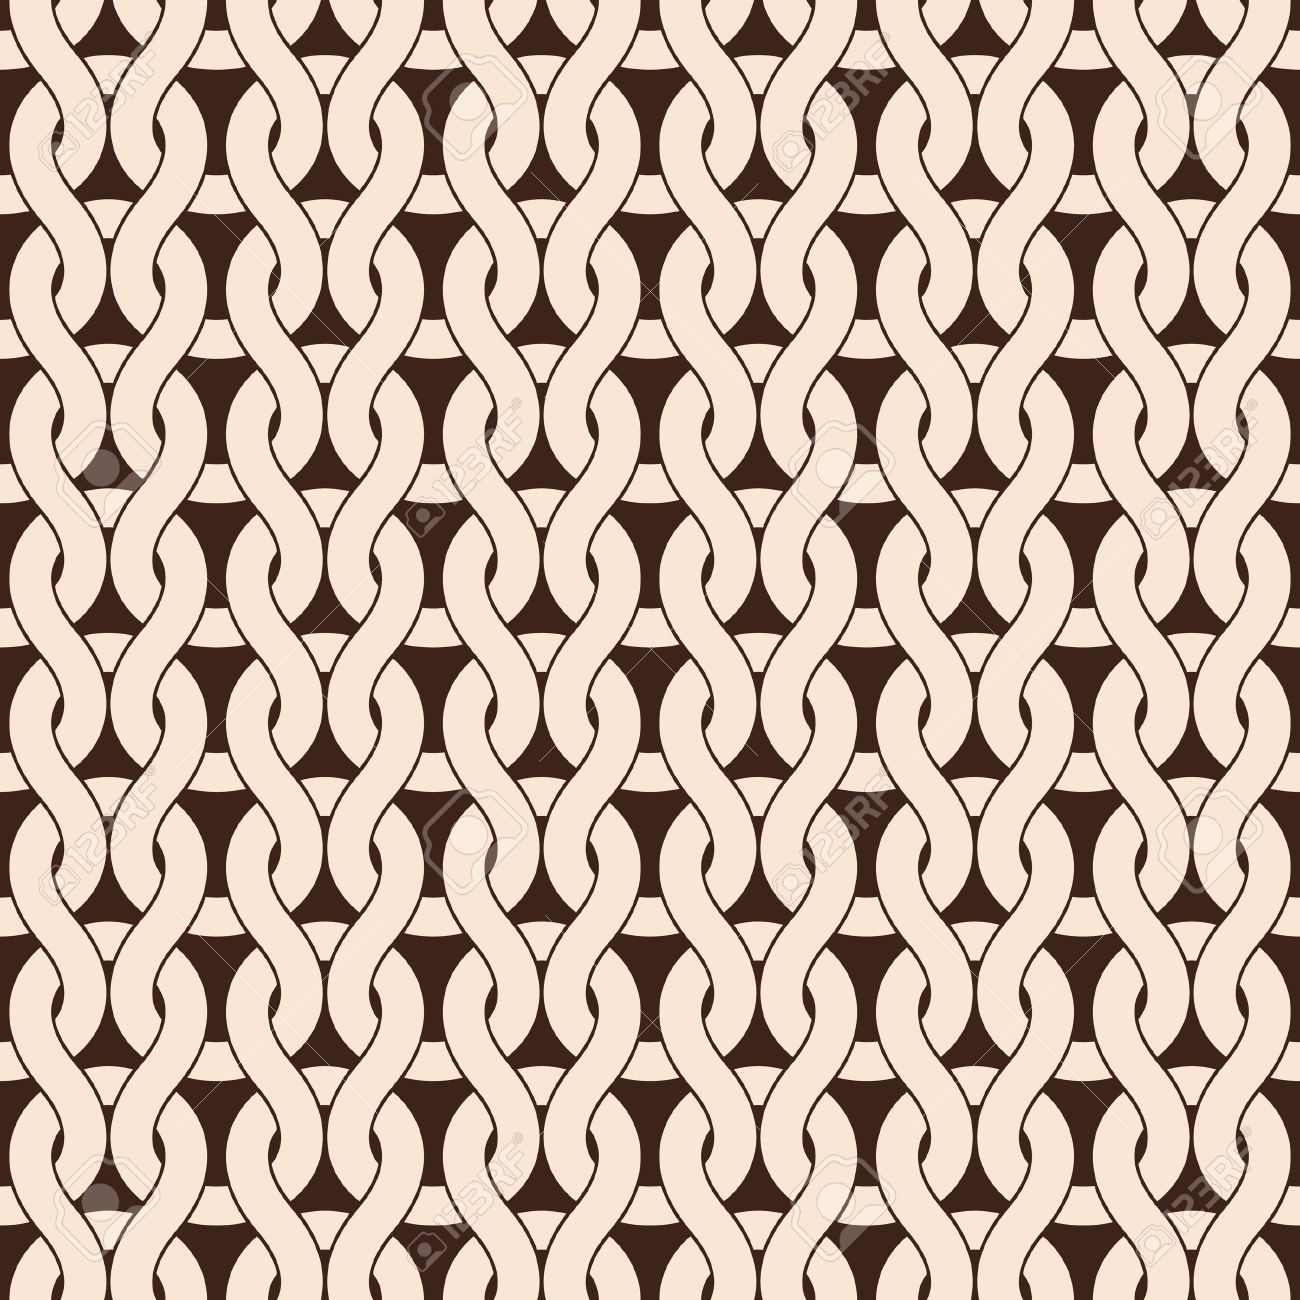 Knitted Seamless Pattern In Natural Color Royalty Free Cliparts ...